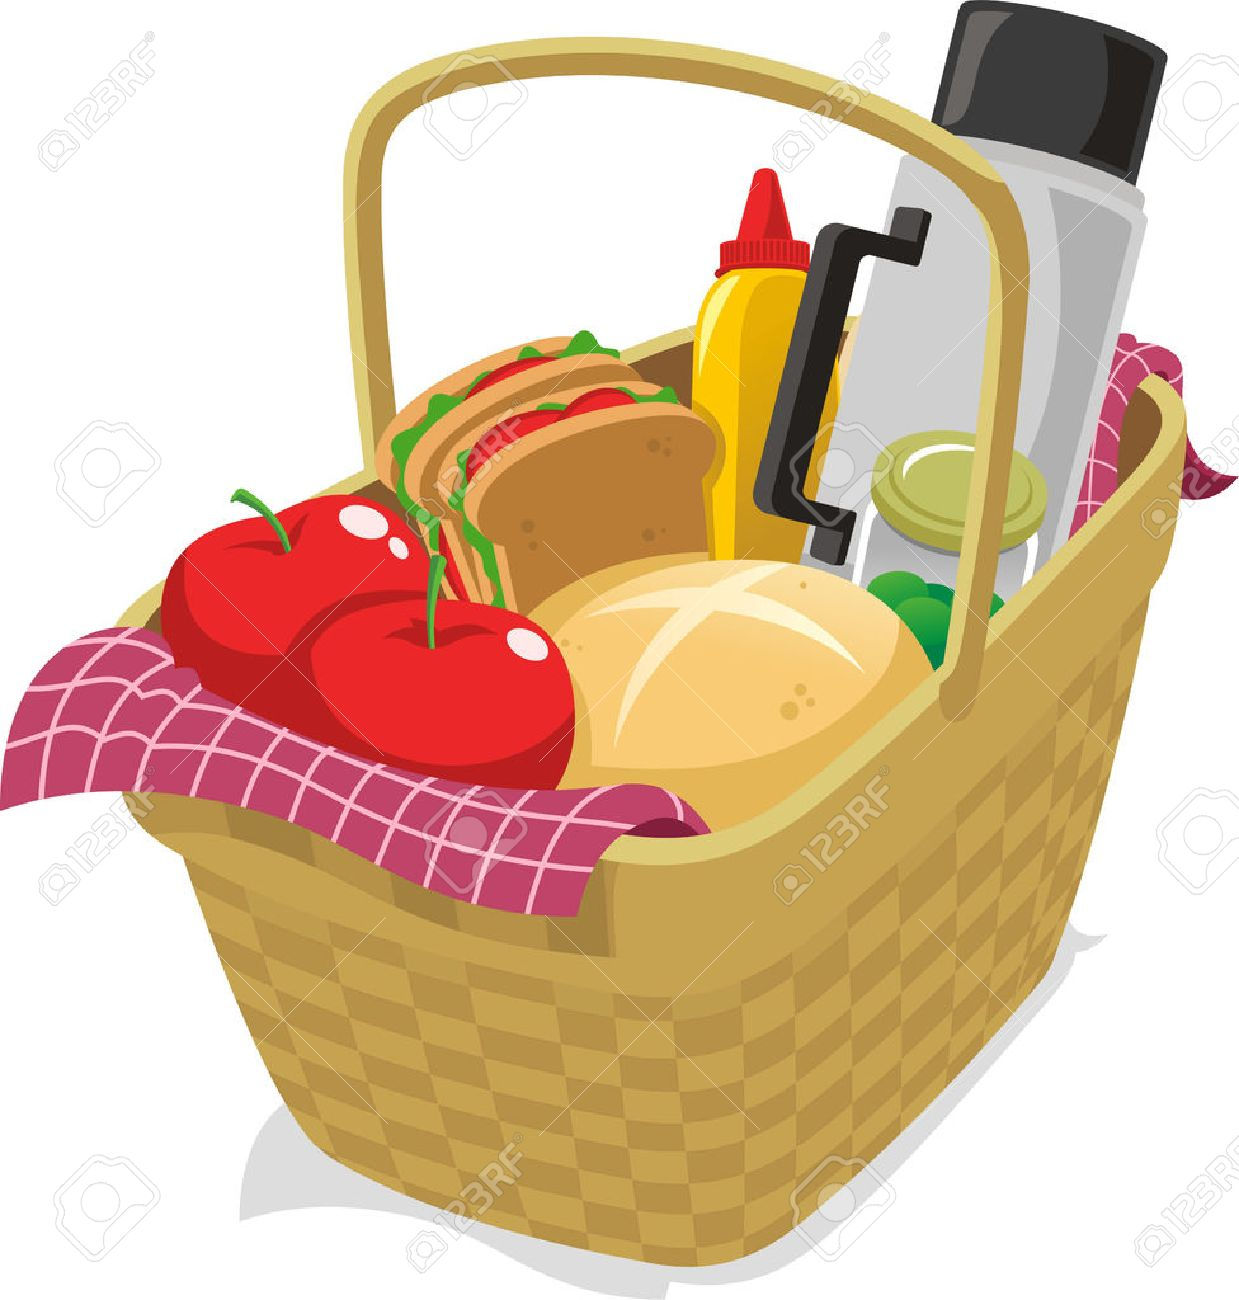 Picnic Basket Filled With Food Cartoon Illustration Royalty Free Cliparts Vectors And Stock Illustration Image 33787493